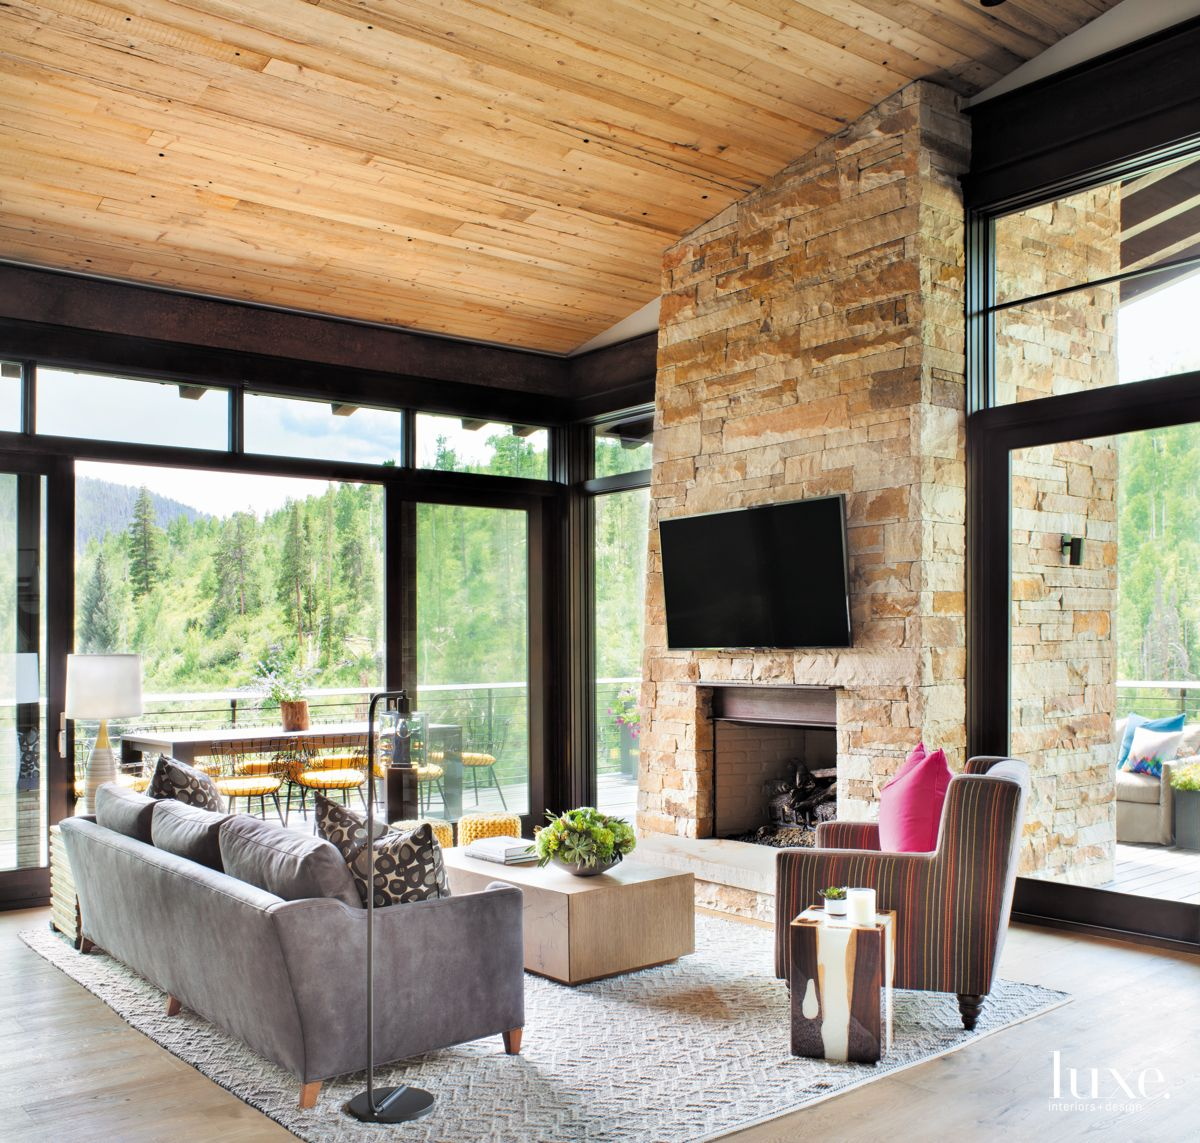 Television Mounted on a Stone Fireplace Living Room with Panoramic Views